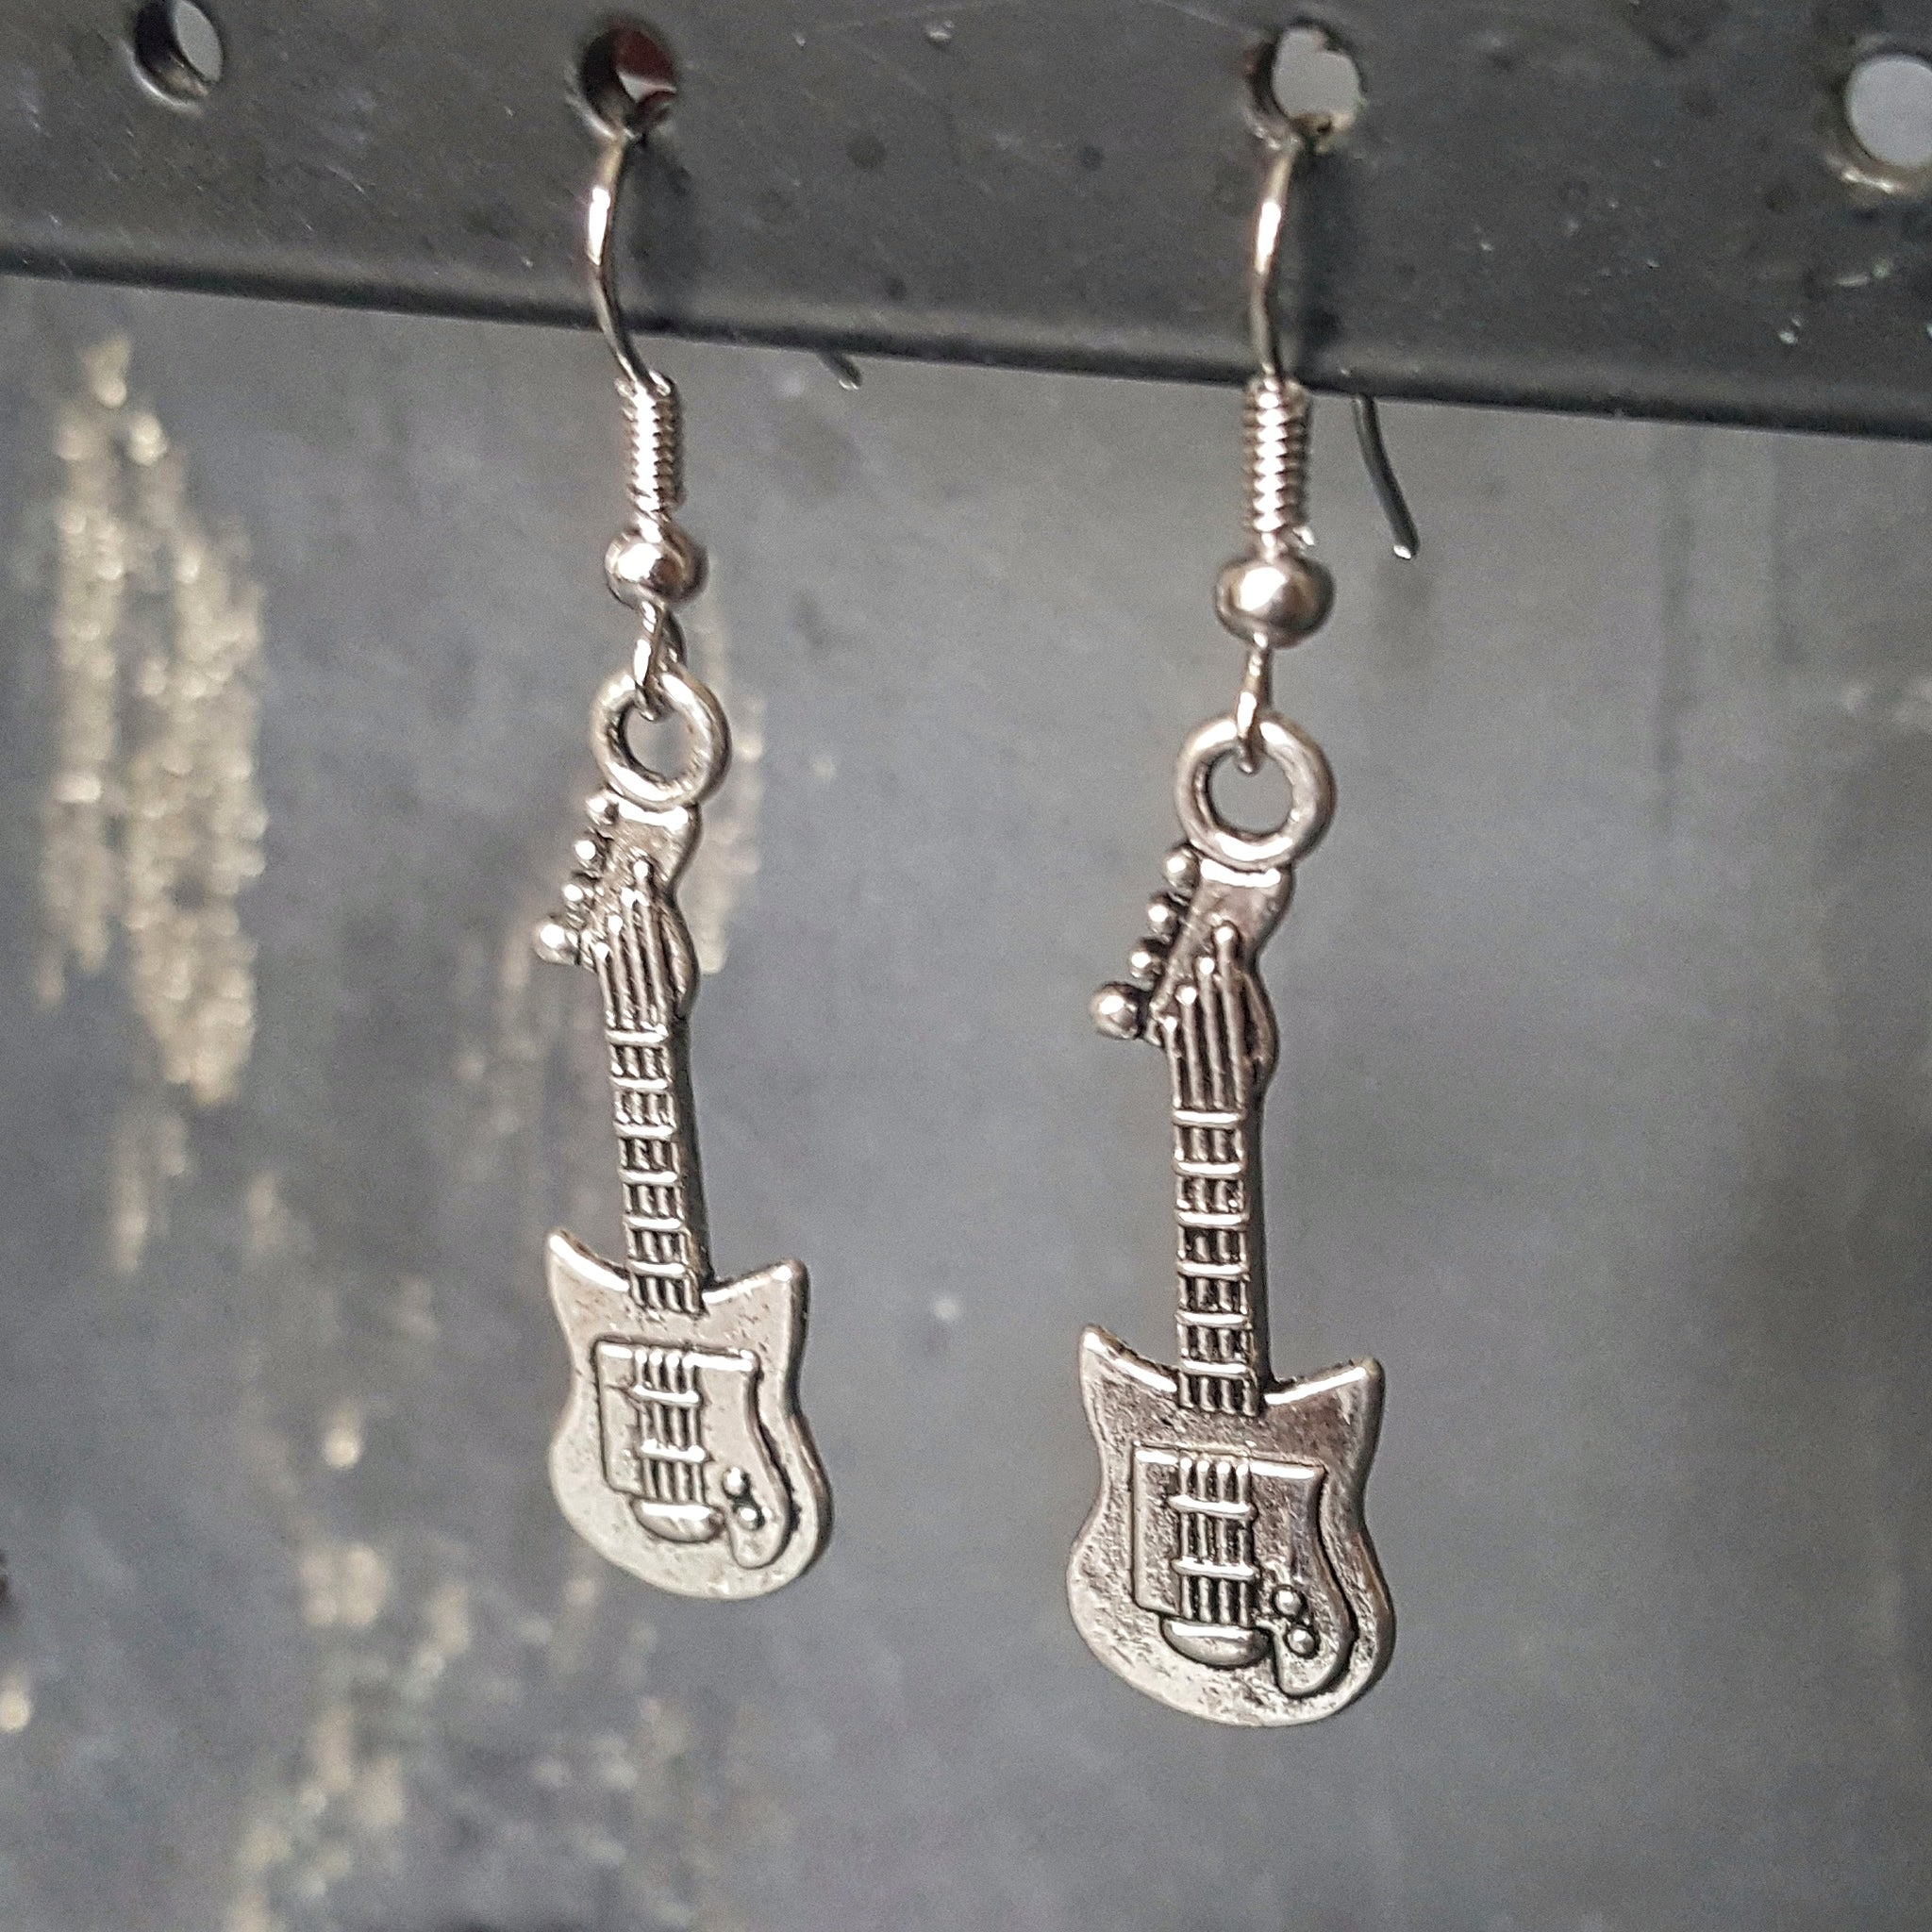 Silver Guitar Earrings Gift Idea for Guitarist - DRAVYNMOOR